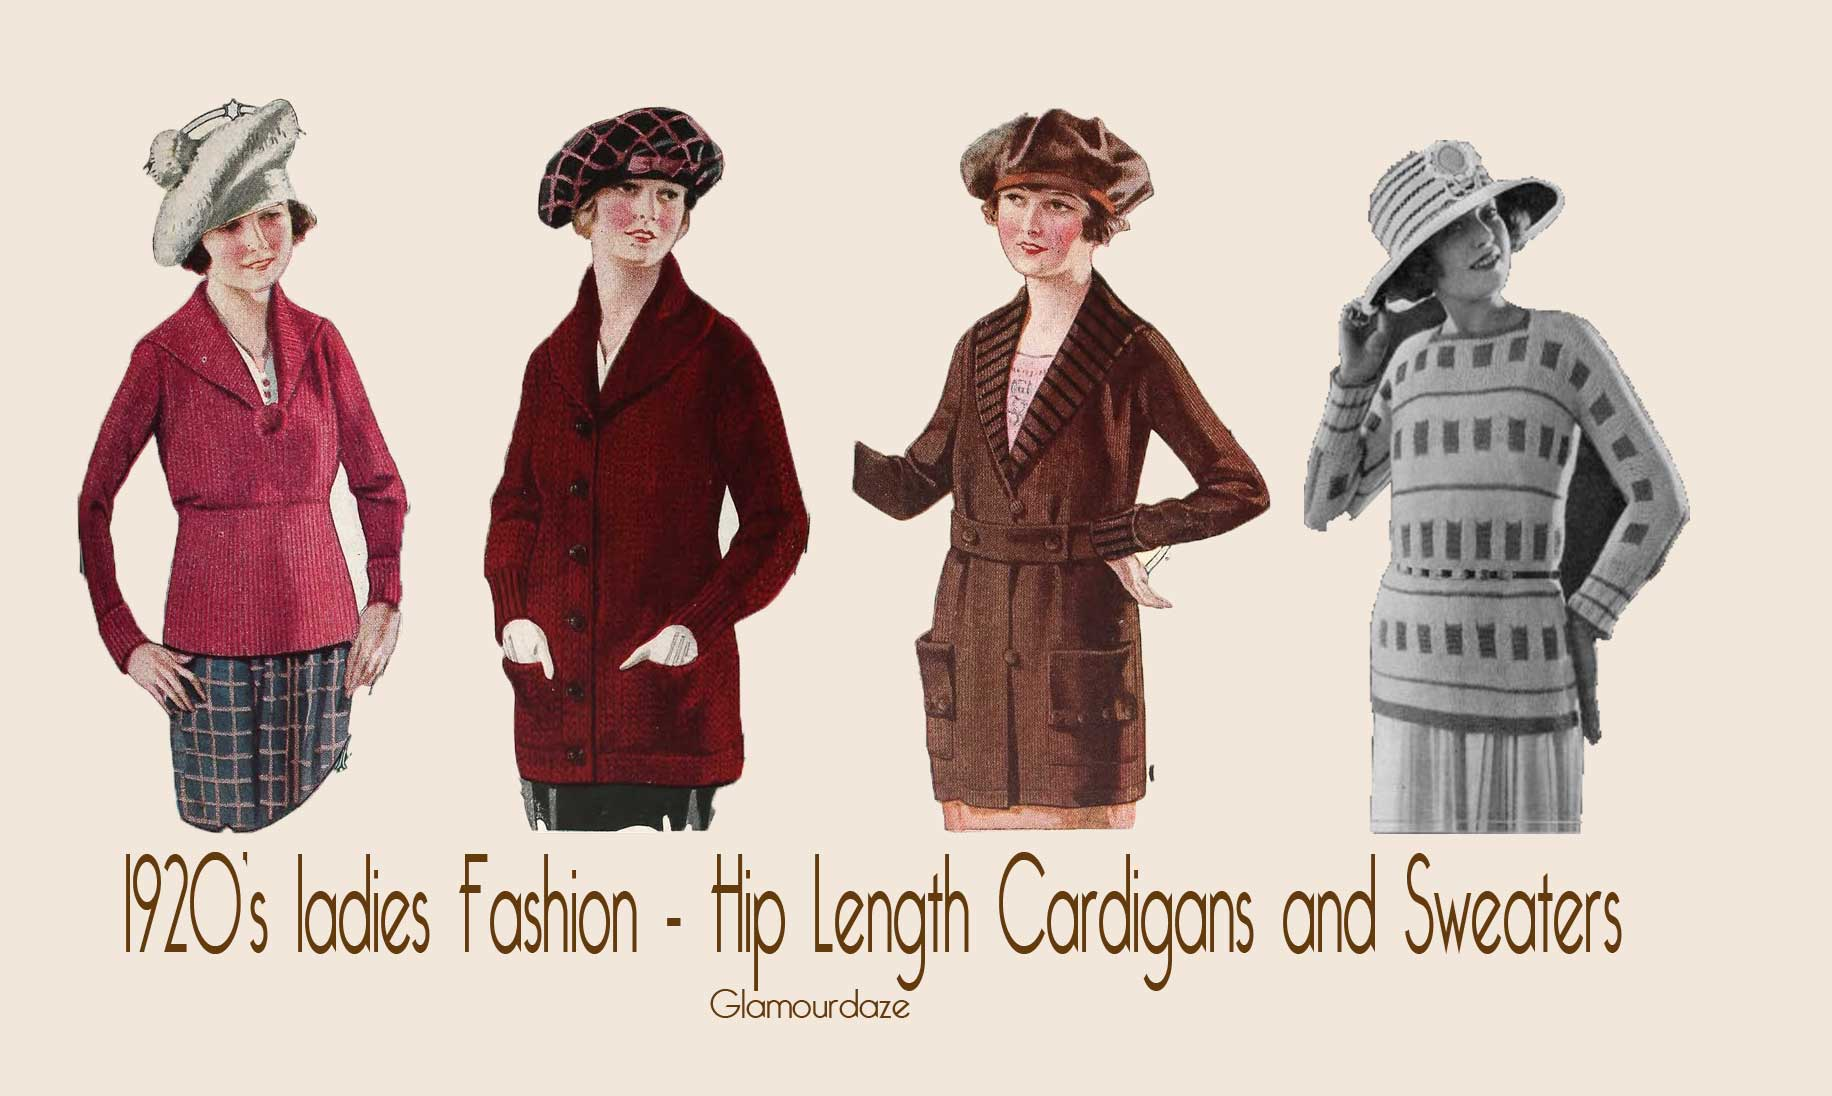 1920s fashion - Womens Dress and Style | Glamourdaze